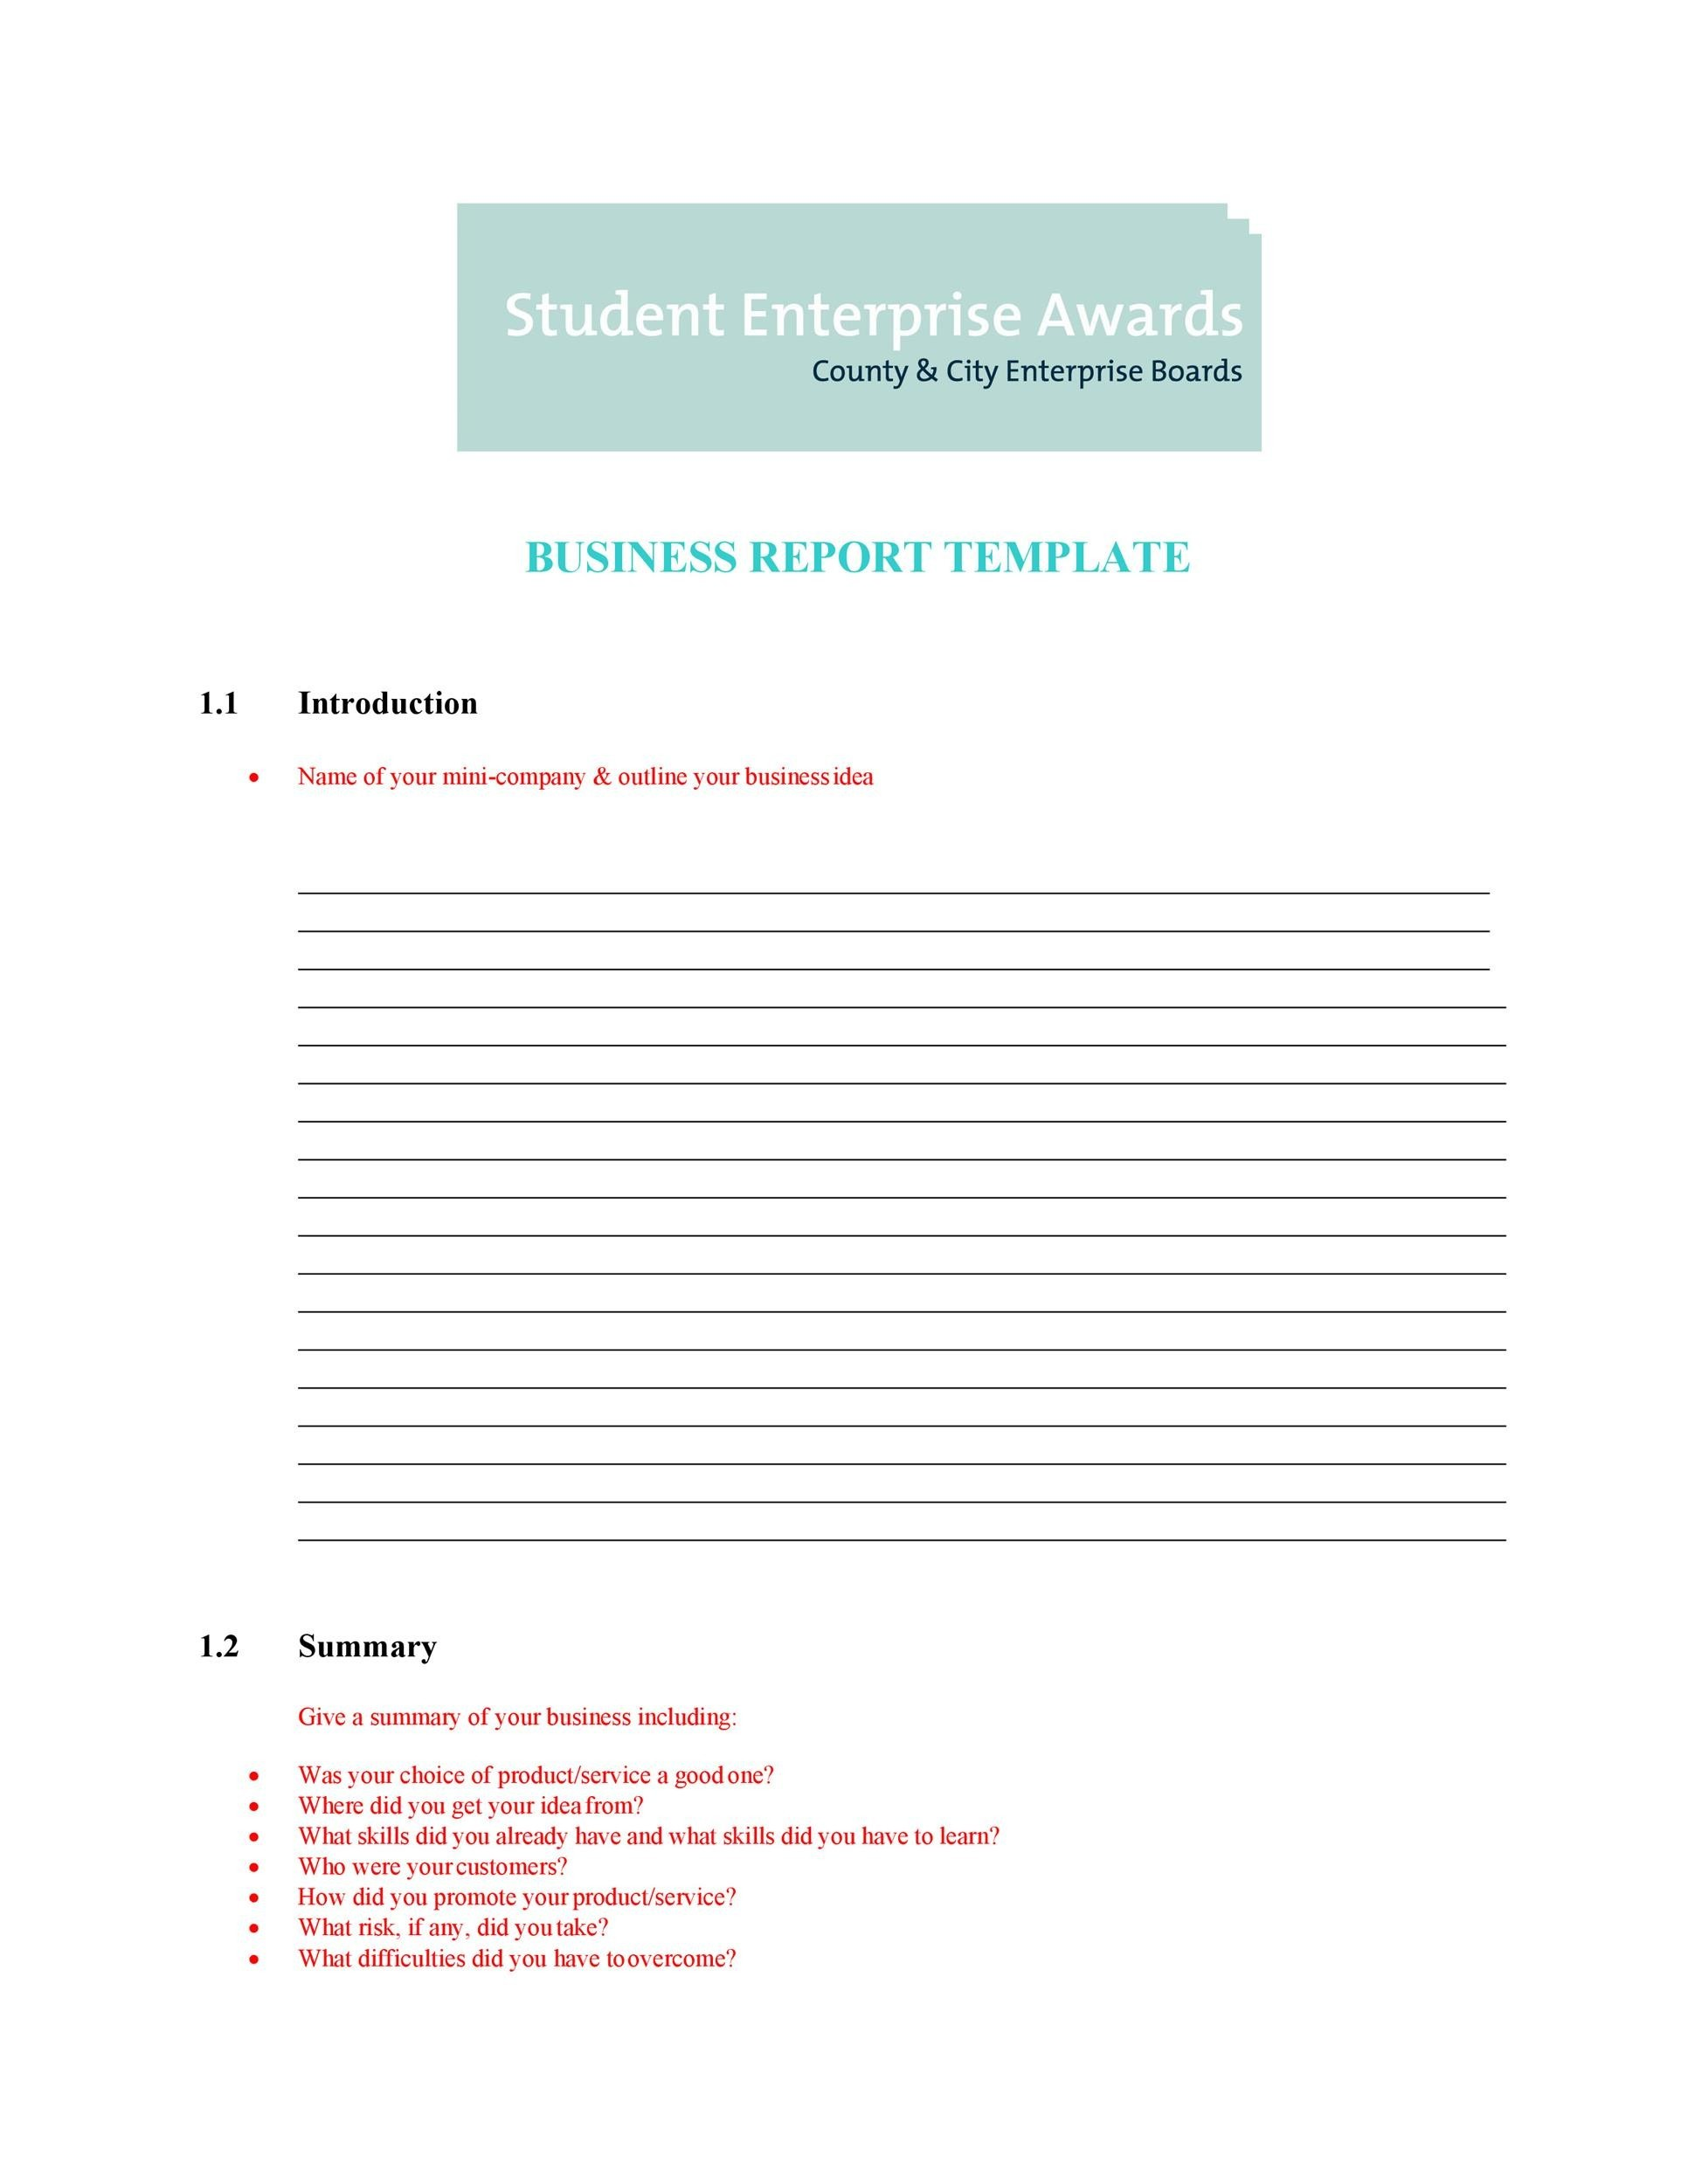 Free business report template 02